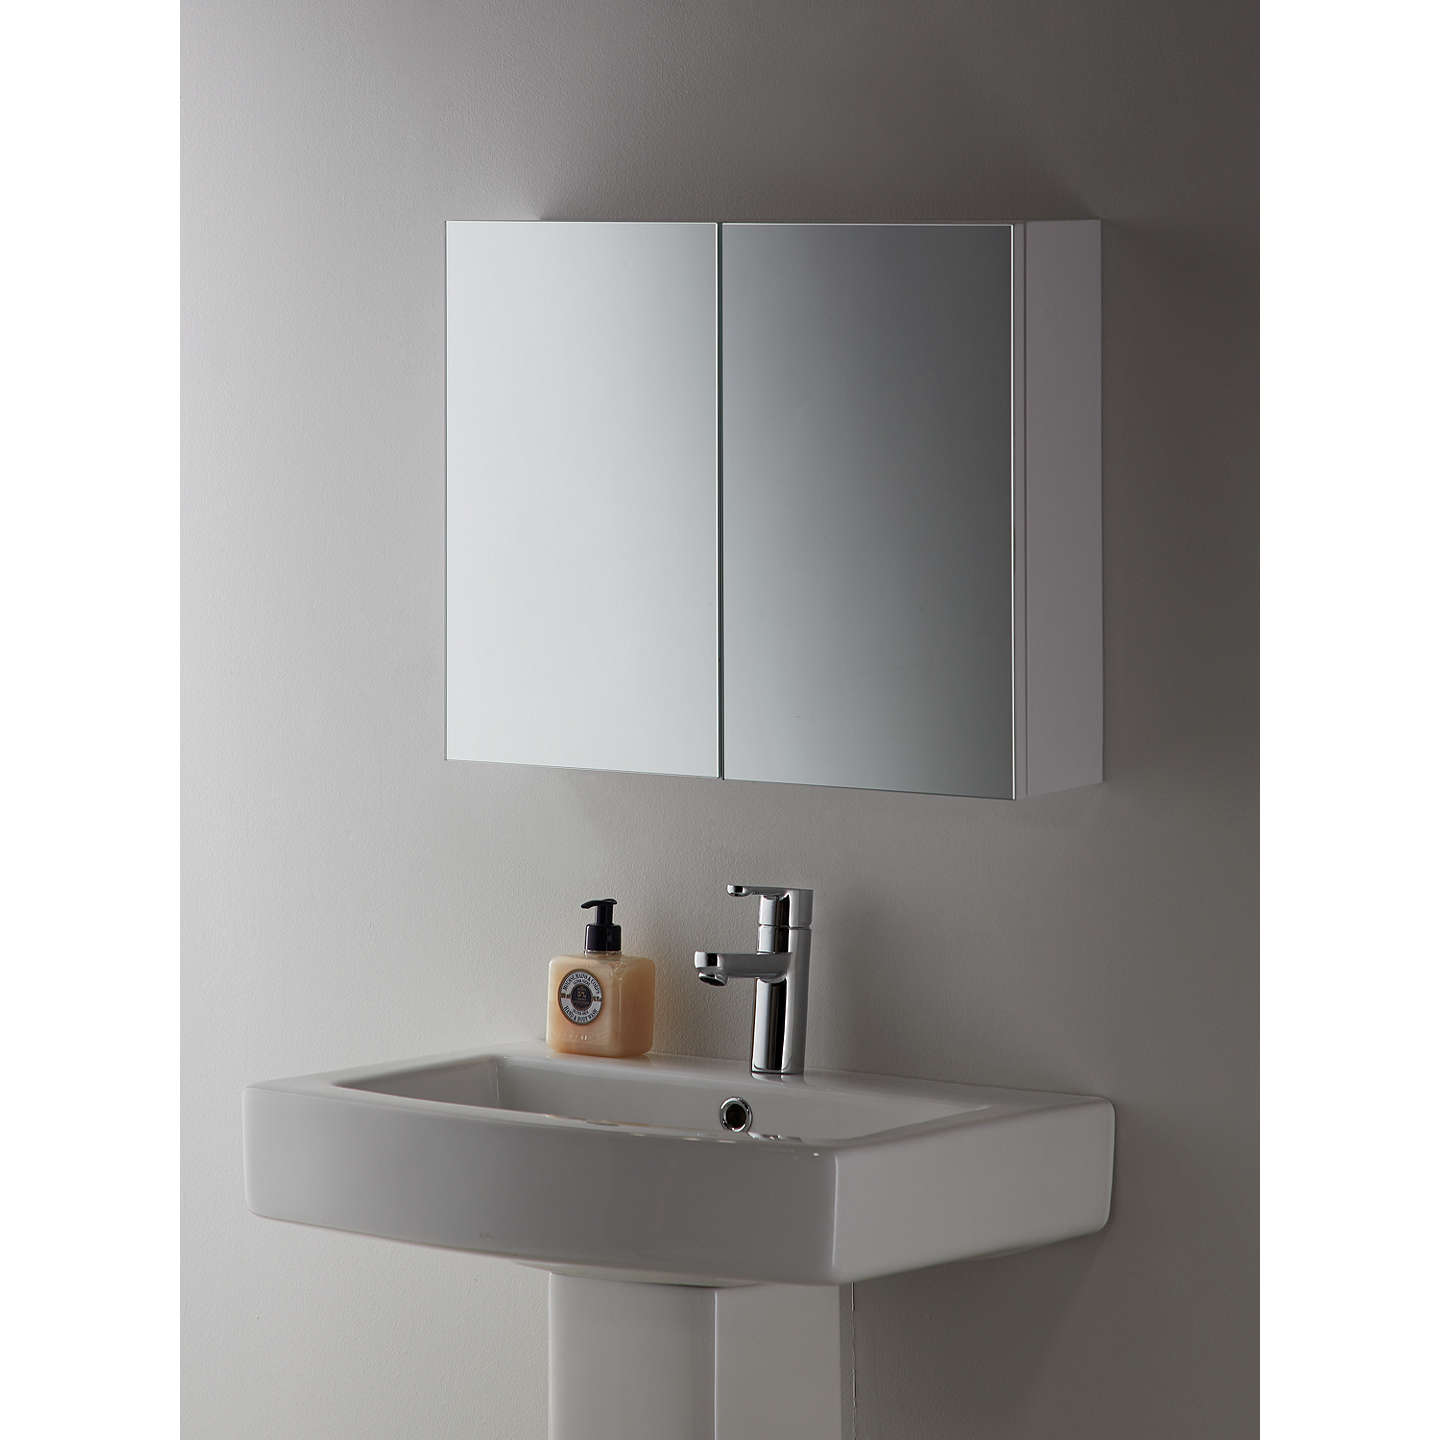 John lewis white metal double bathroom cabinet at john lewis John lewis bathroom design and fitting